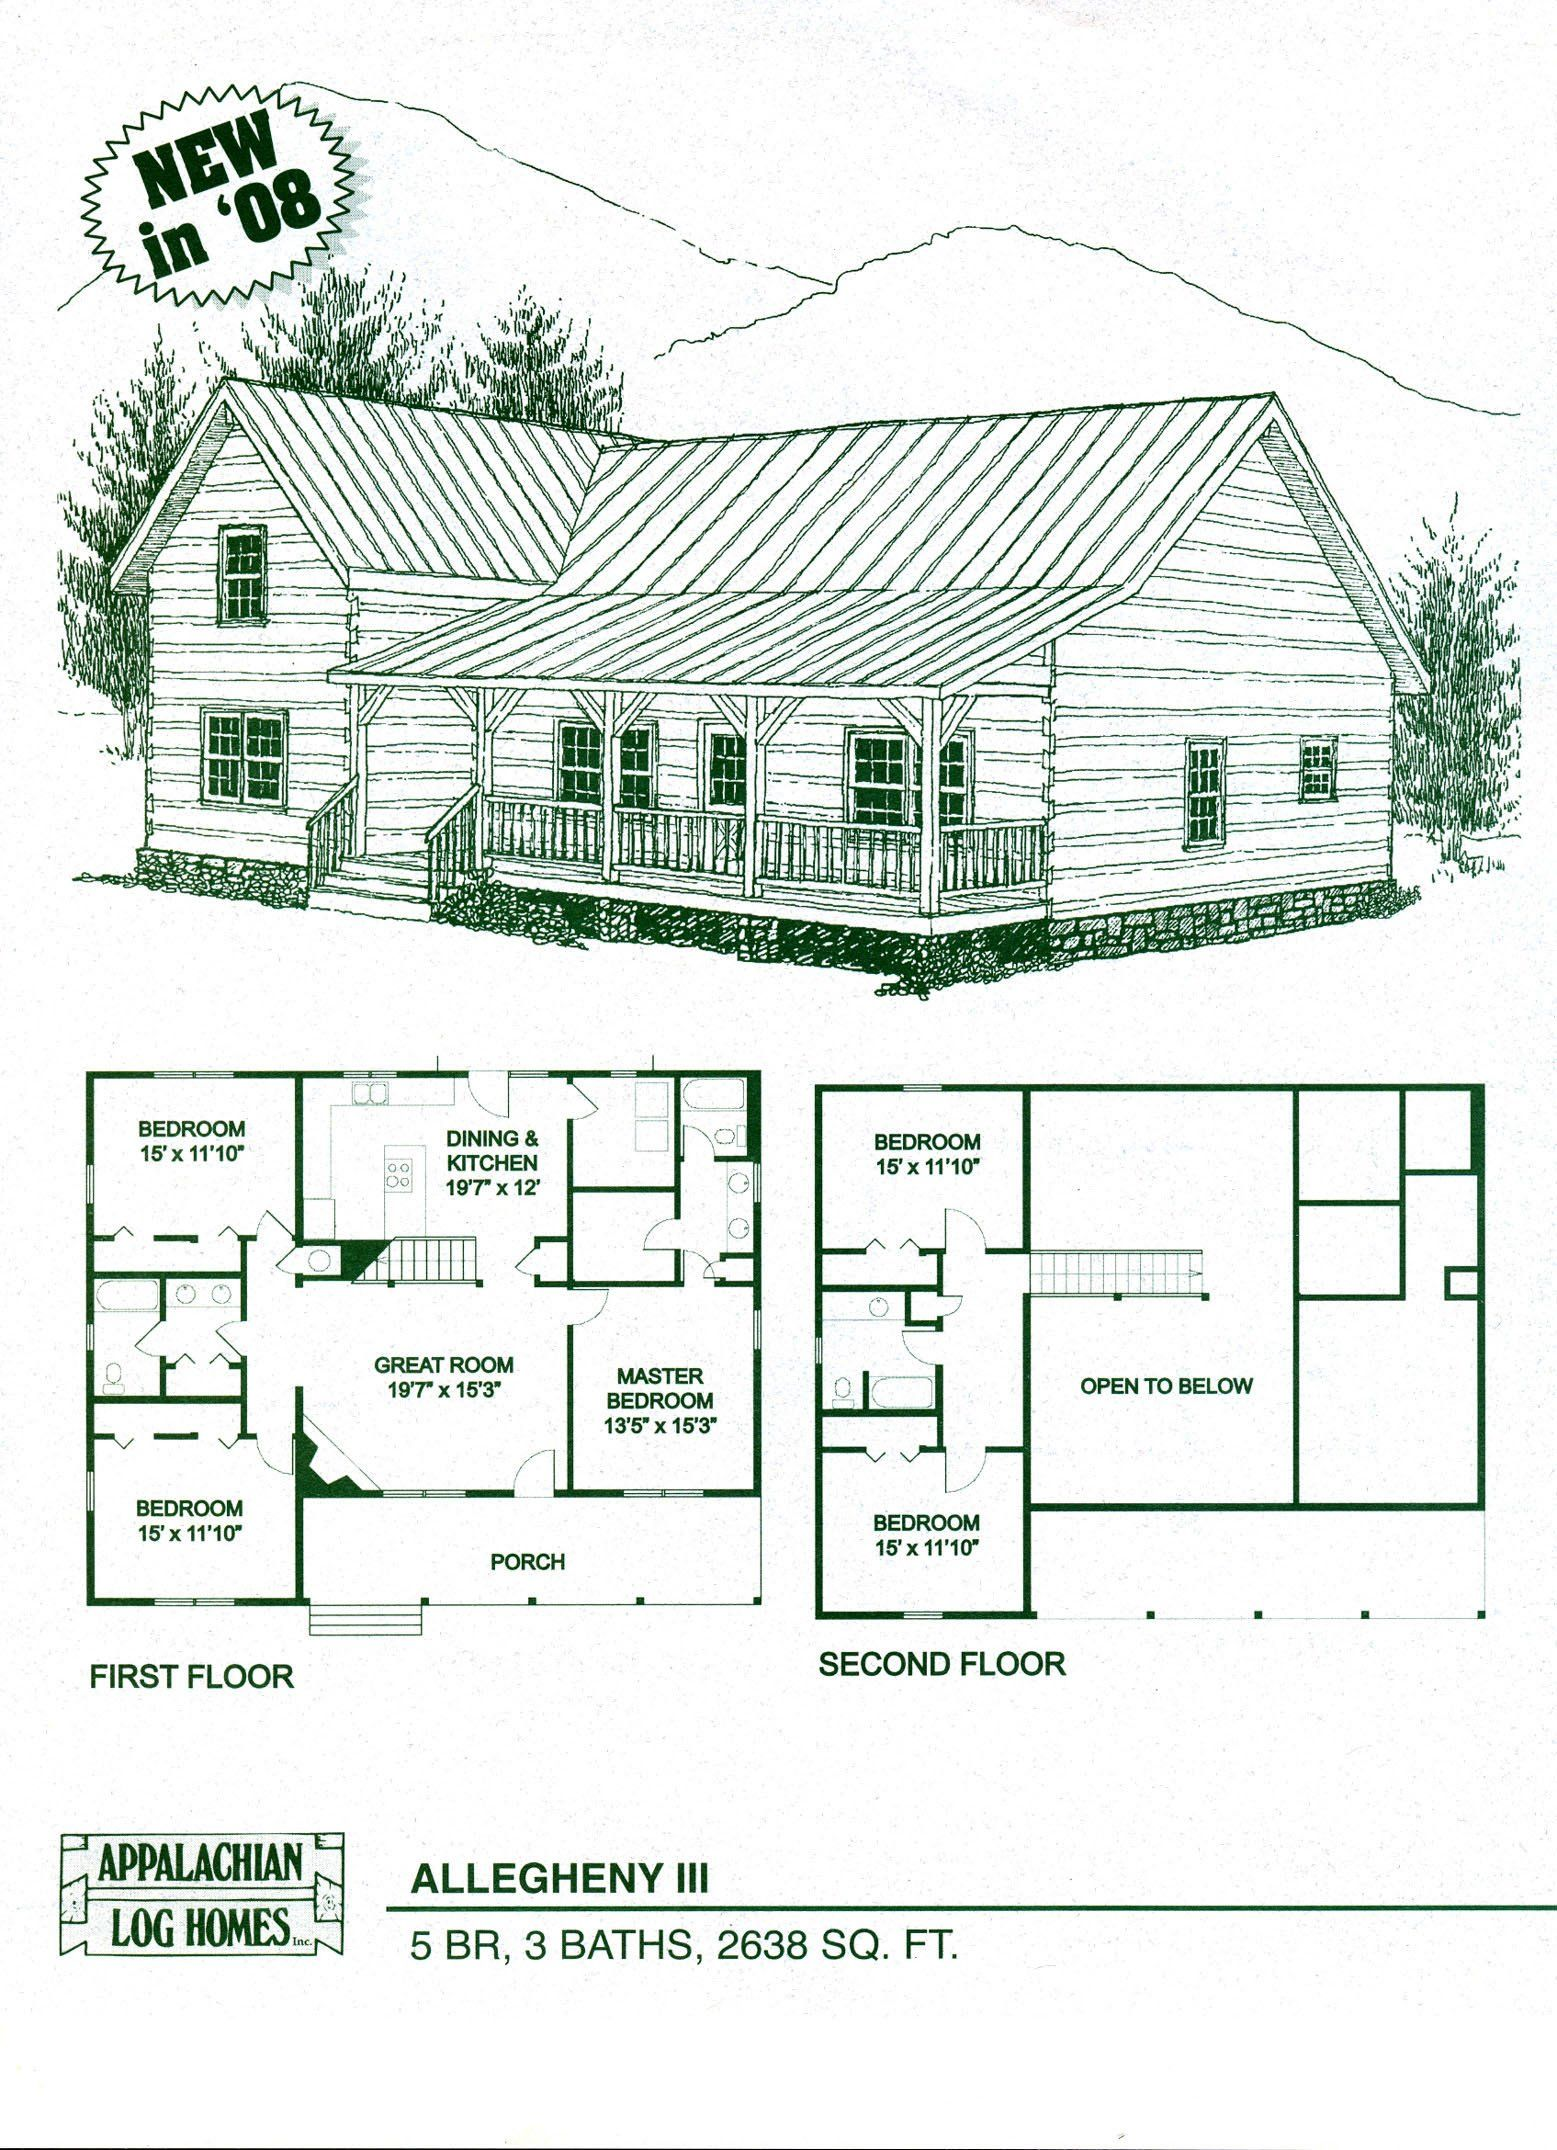 Good small house floor plans cottage amazing pictures grafikdede com - Beautiful Cabin Floor Plans Free Amazing Pictures Grafikdede Architecture Frame Build Log Home Kits Tiny House